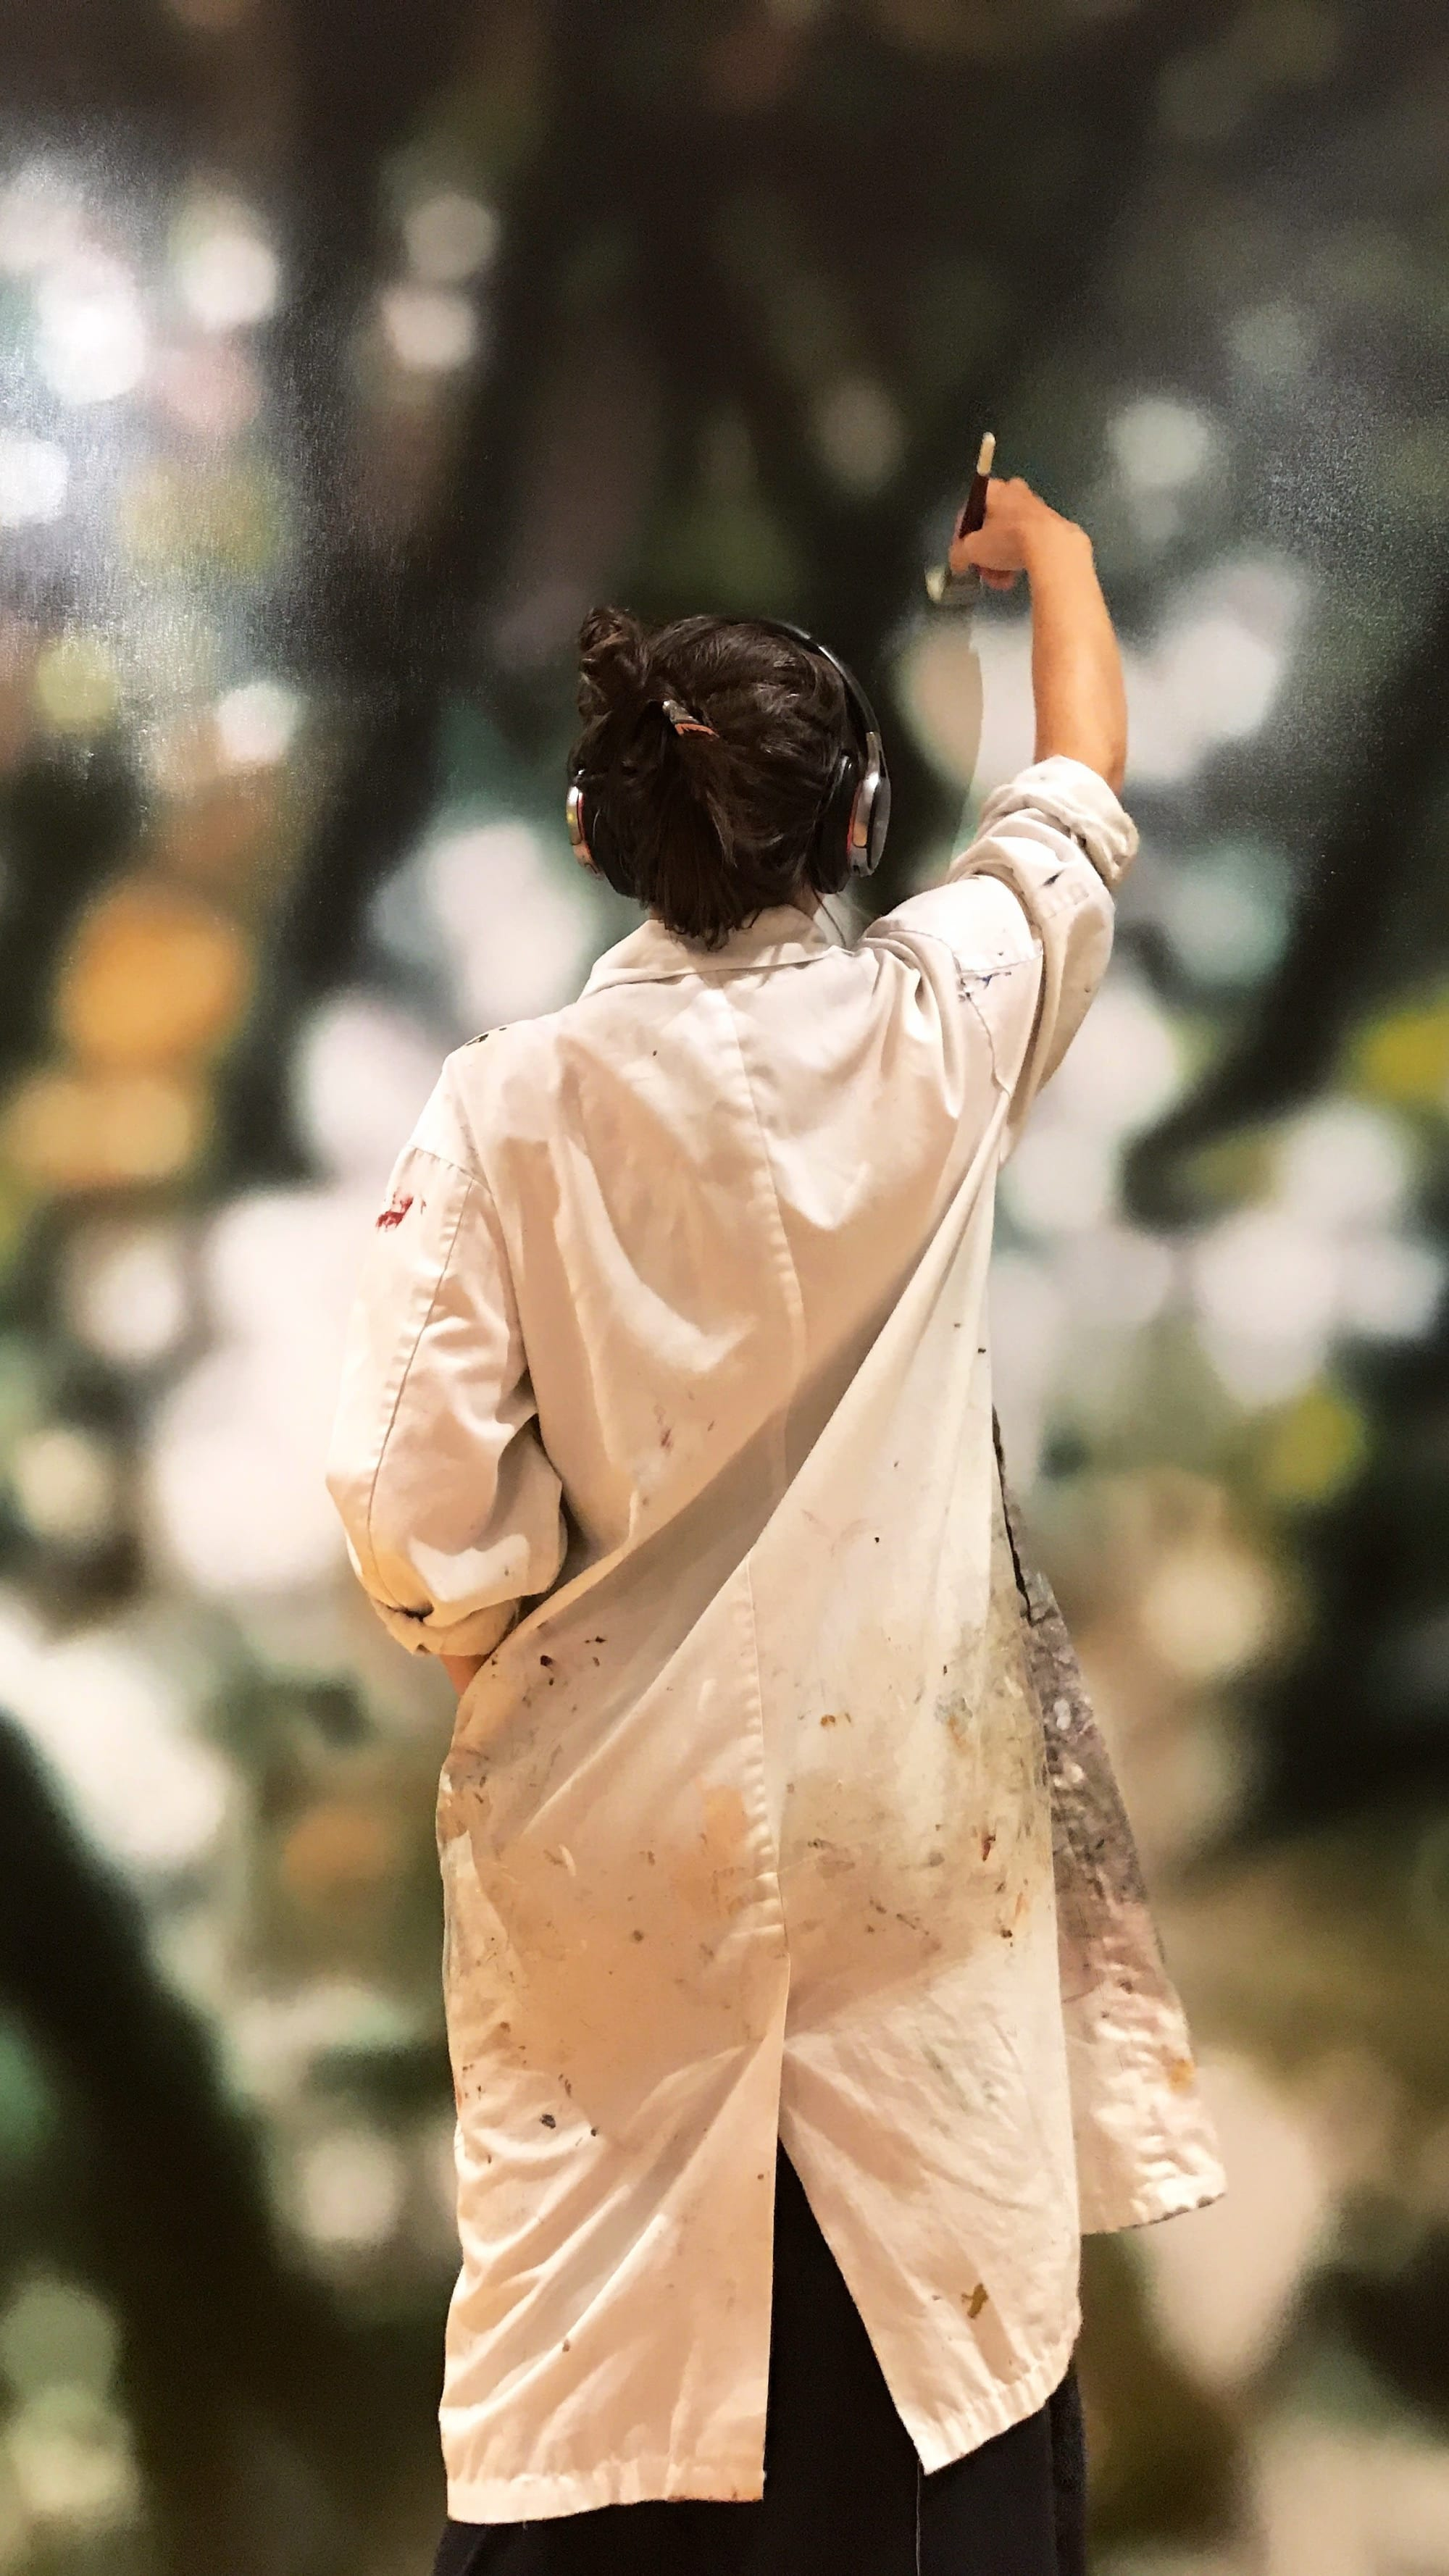 """Paintings by Laura Wood seen at 6611 Pearson Way, Richmond - """"Wind Of My Soul"""""""